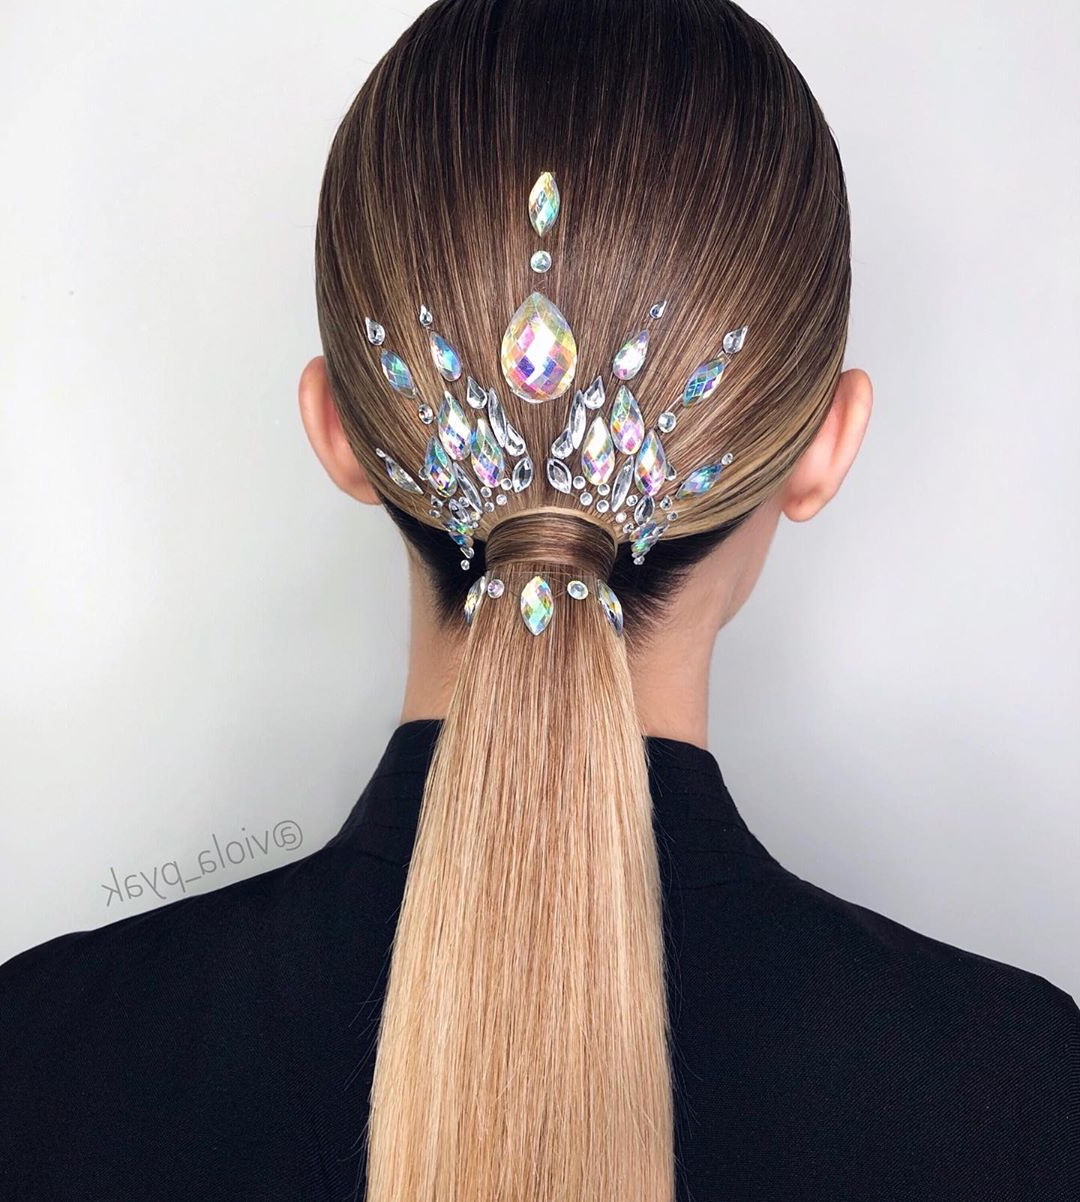 20 Ponytail Ideas And Tutorialsviola Pyak With Latest Stitched Thread Ponytail Hairstyles (View 2 of 20)